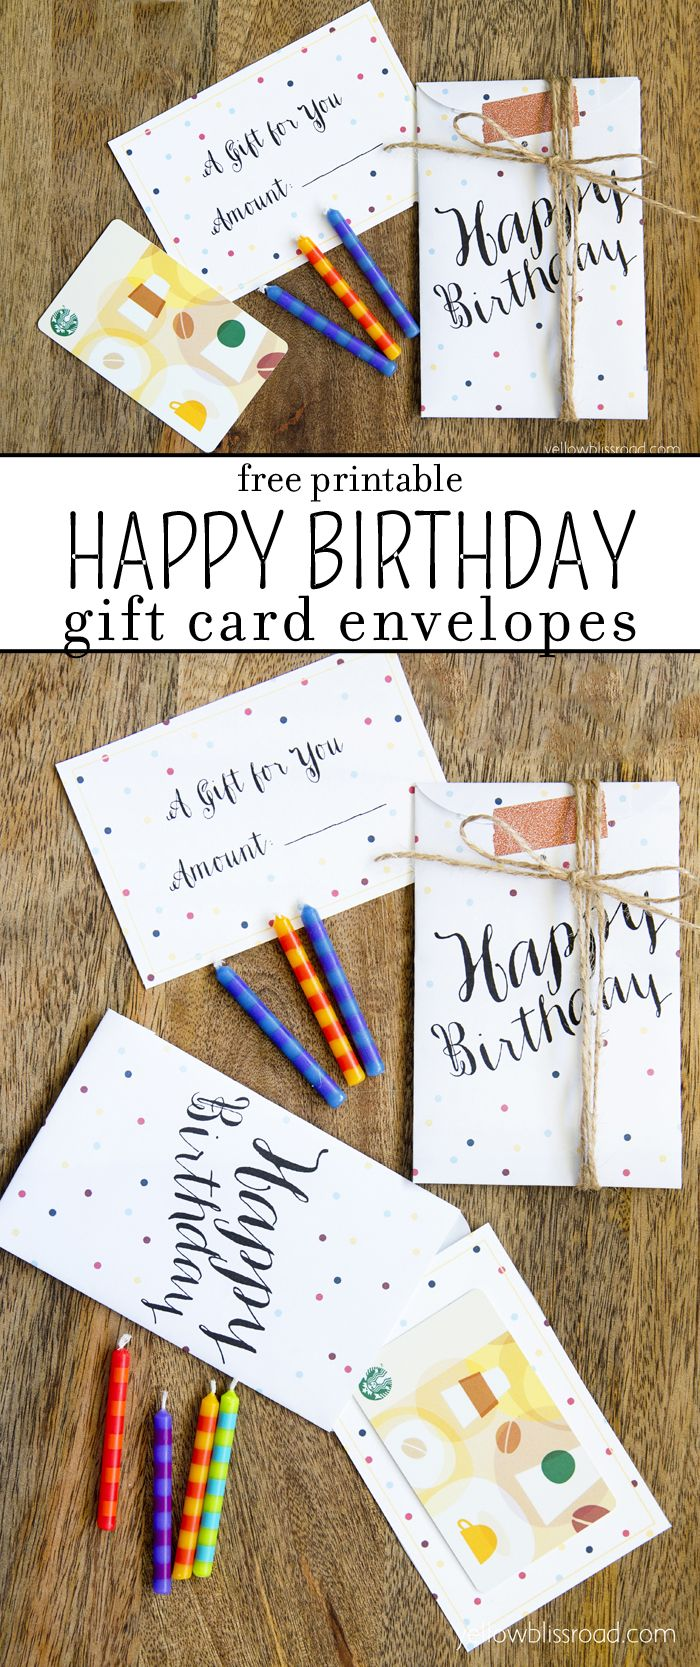 Best 25 Free printable birthday cards ideas – Fun Printable Birthday Cards